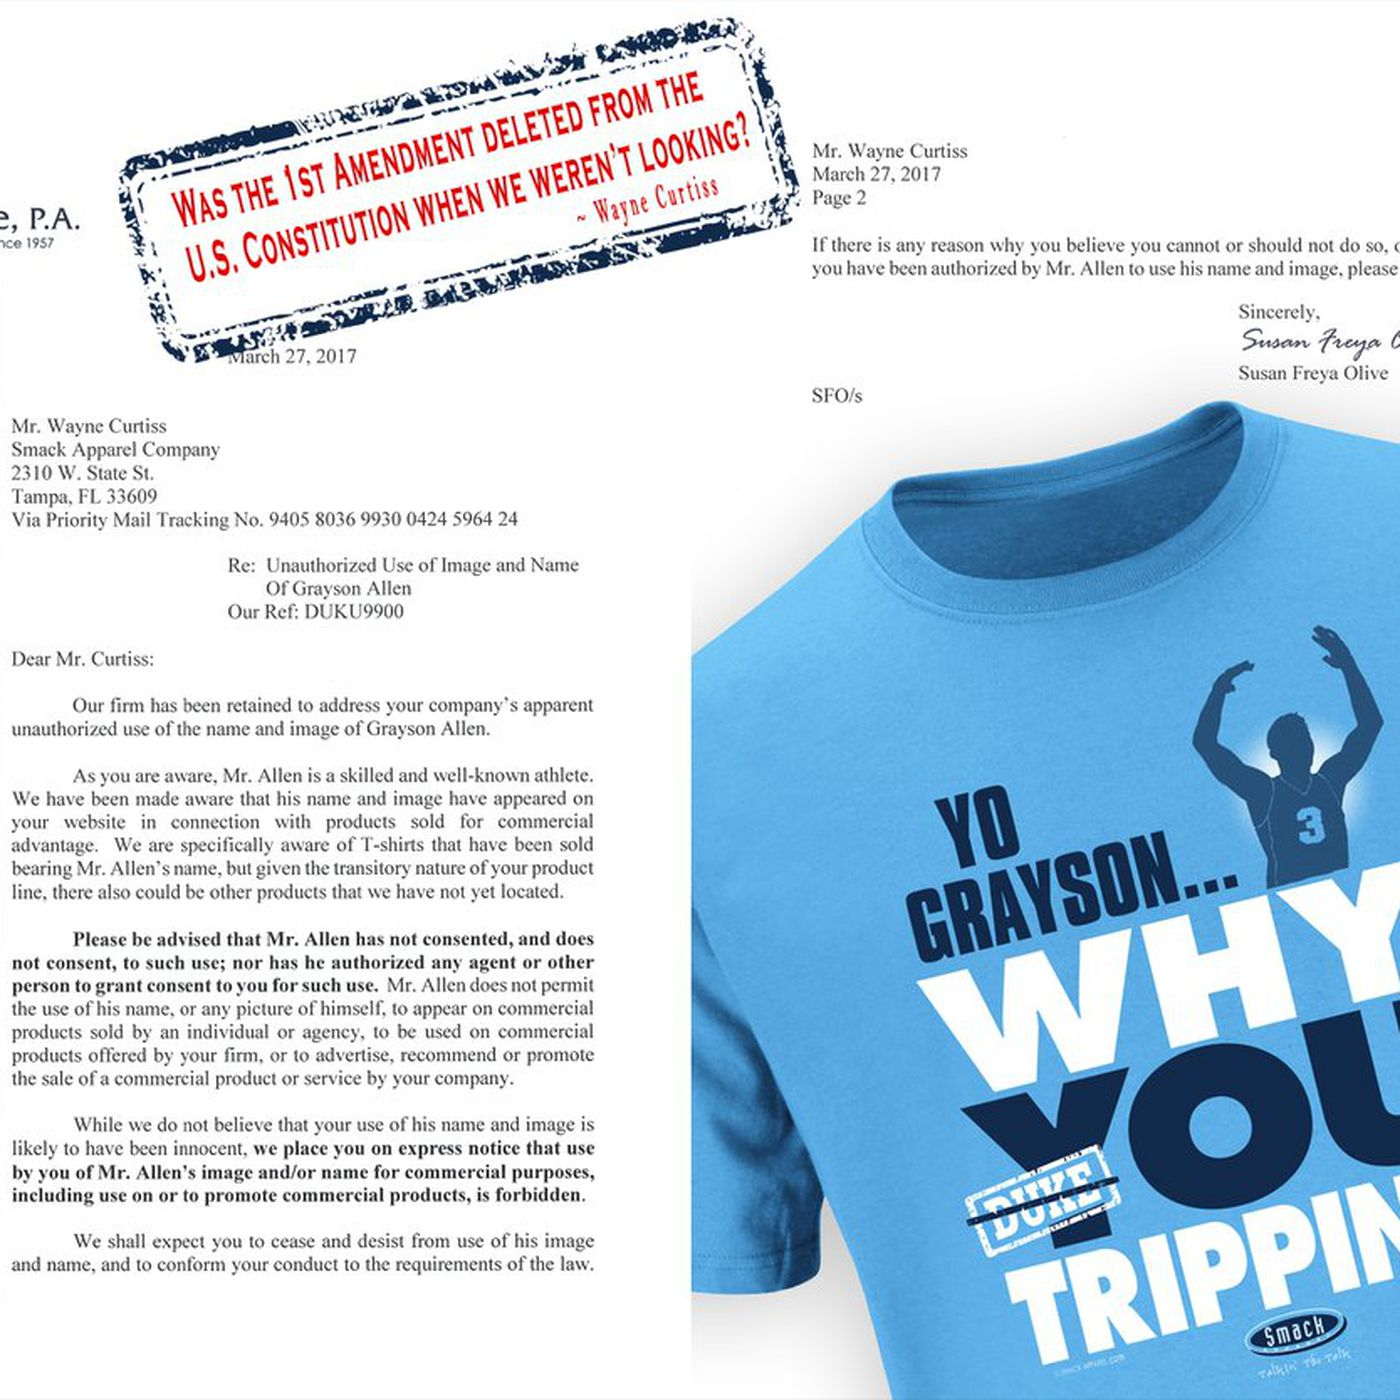 Duke sends cease and desist to company mocking grayson allen on t duke sends cease and desist to company mocking grayson allen on t shirts sbnation thecheapjerseys Gallery